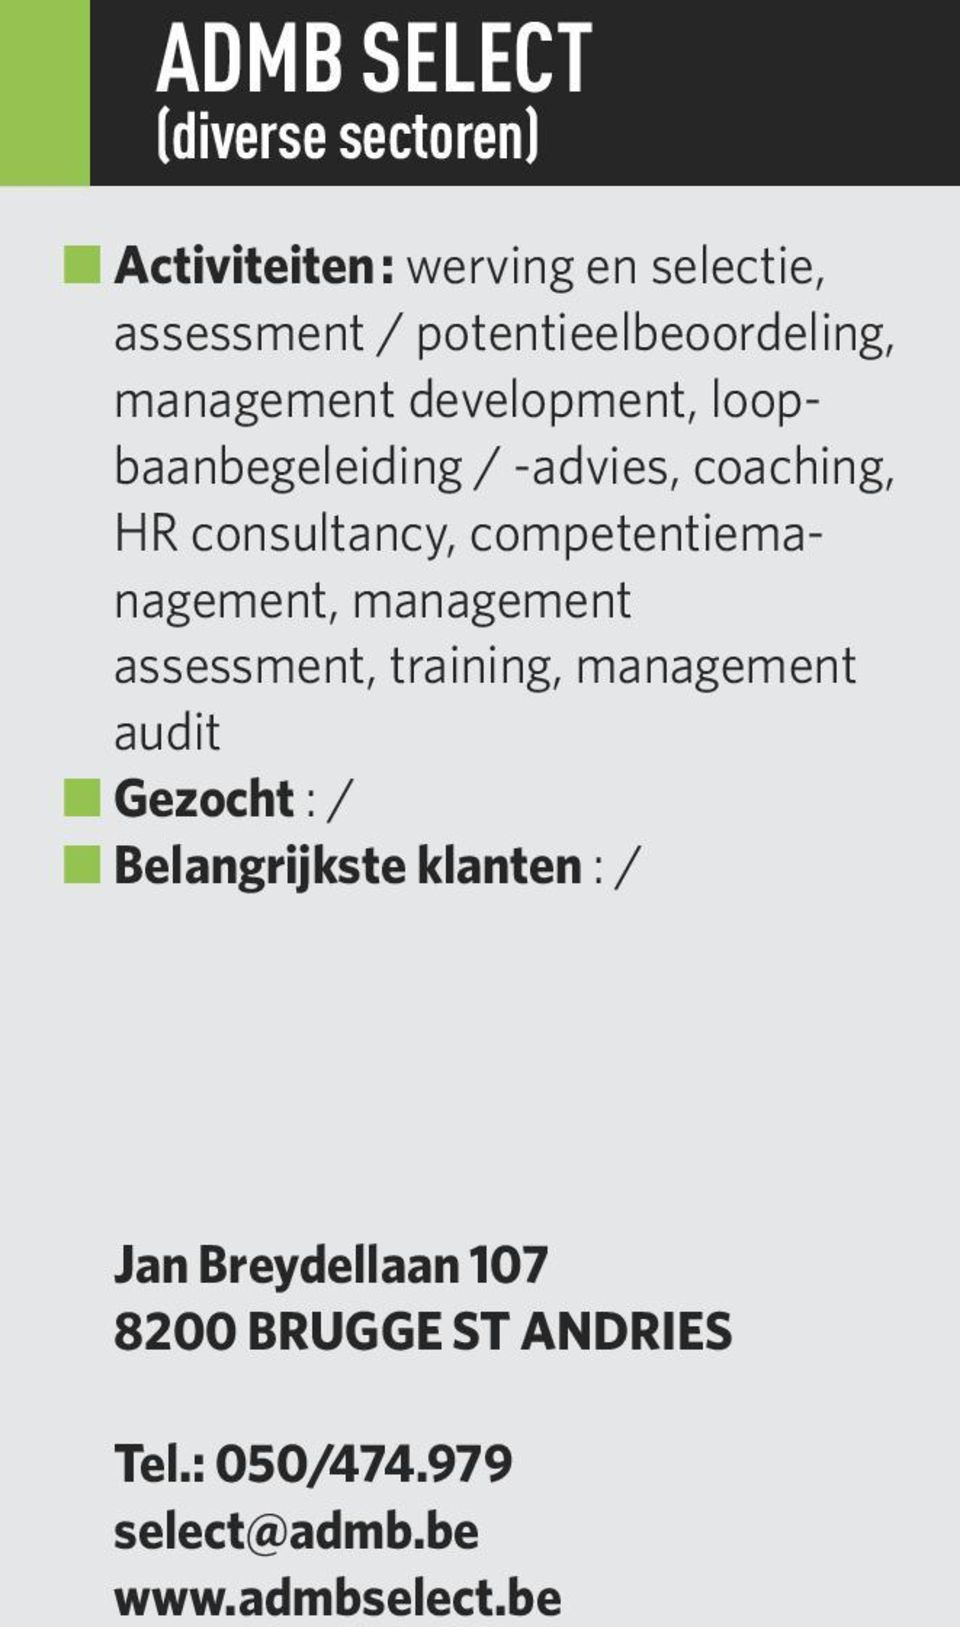 competentiemanagement, management assessment, training, management audit Gezocht : /